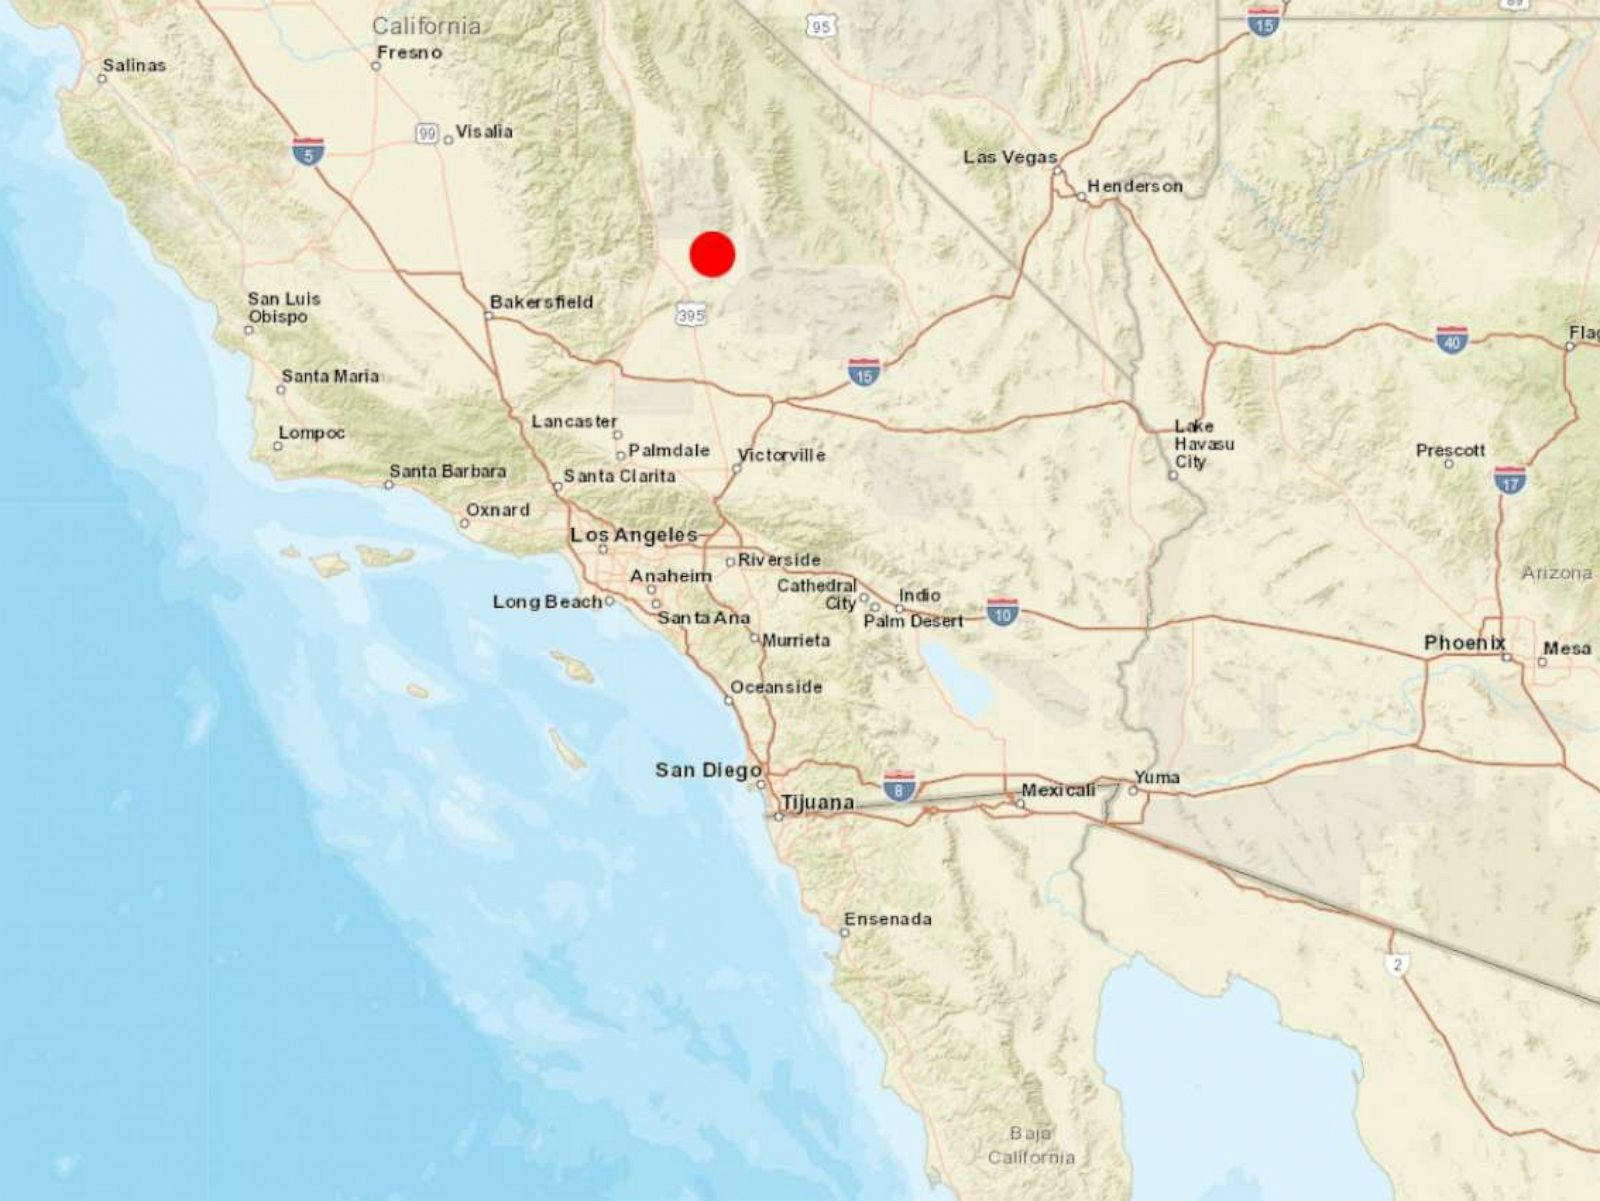 IMG CALIFORNIA EARTHQUAKE